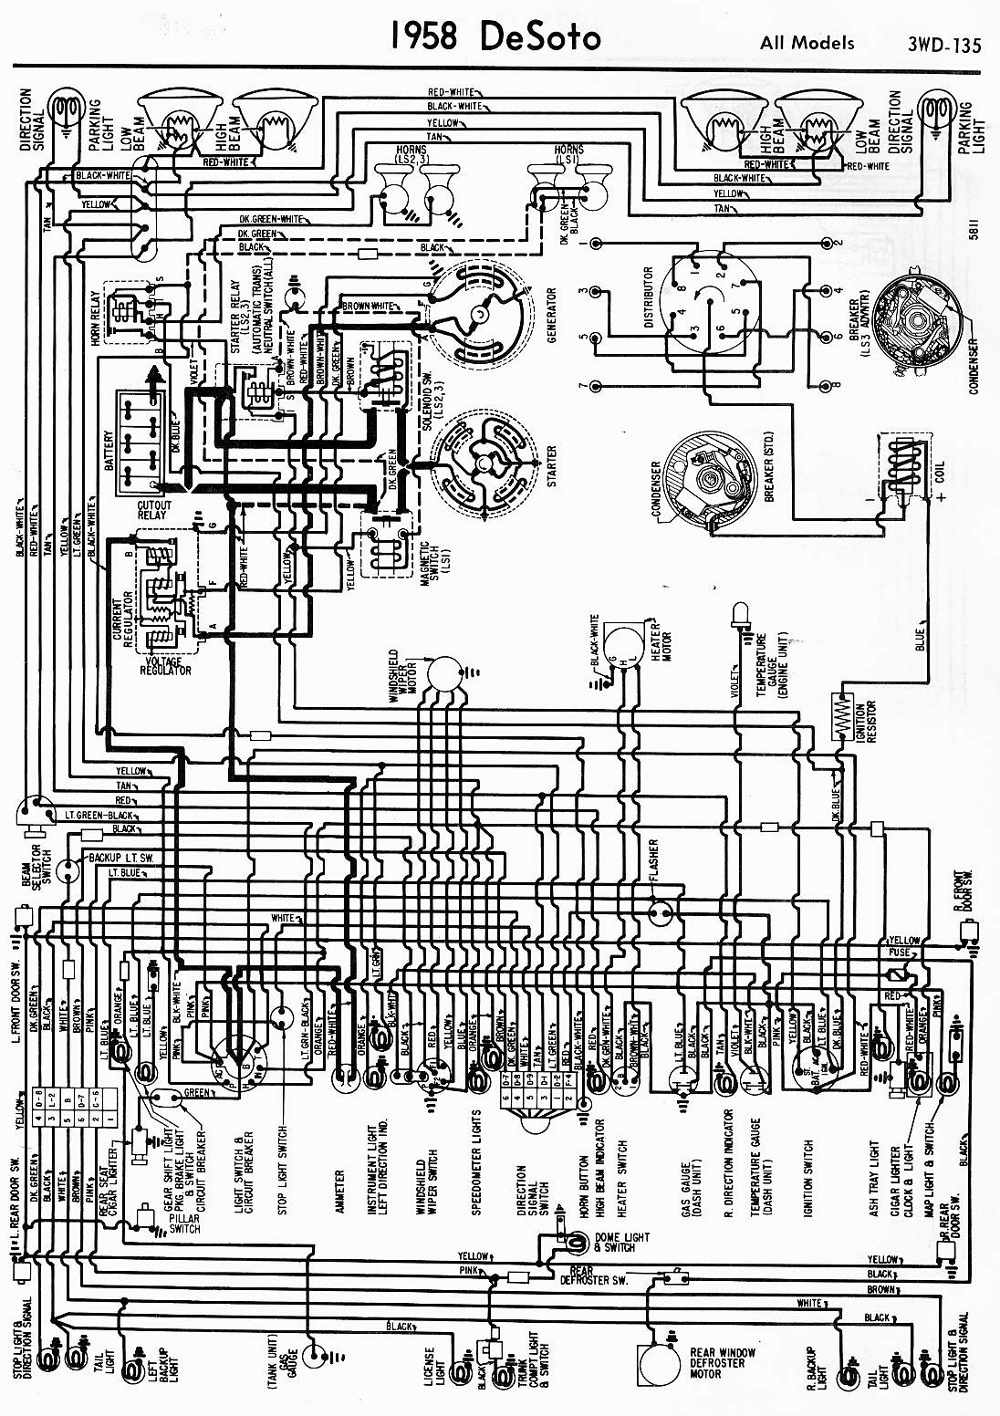 1938 Ford 8n Wiring Diagram Detailed Schematic Diagrams For 3000 Sel Well Tractor On Naa